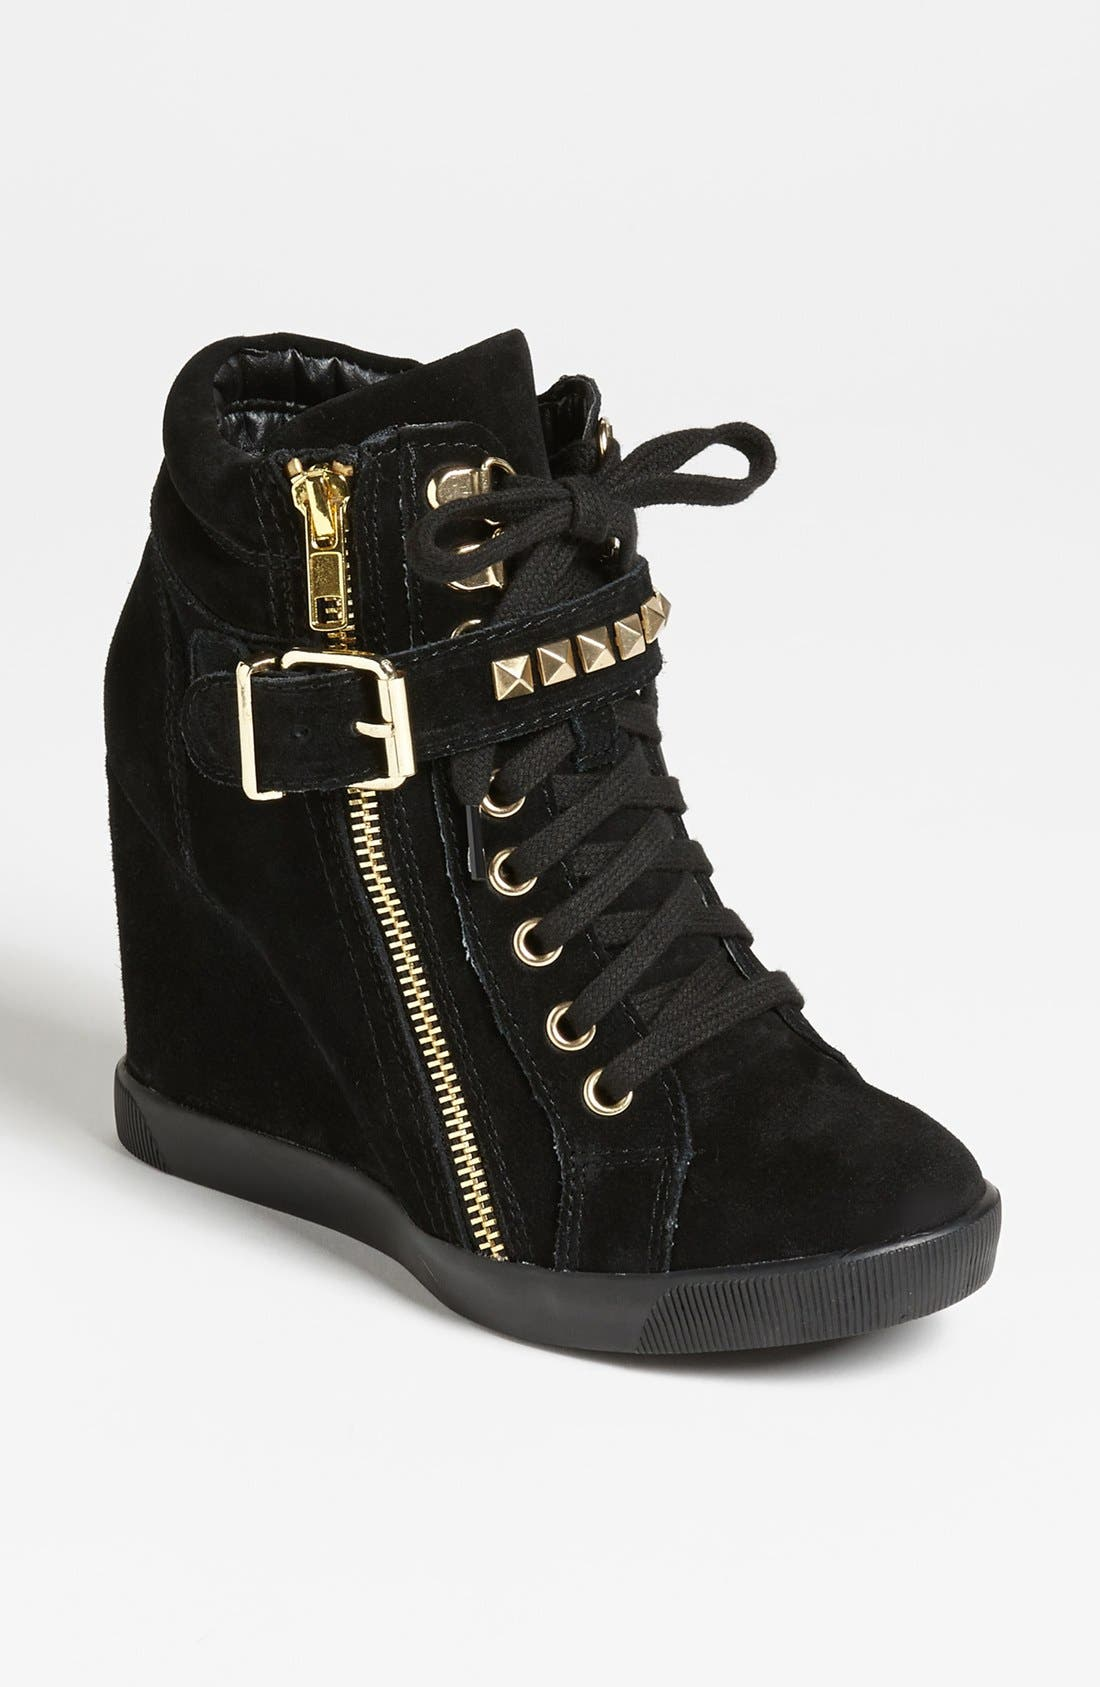 Alternate Image 1 Selected - Steve Madden 'Obsess' Wedge Sneaker